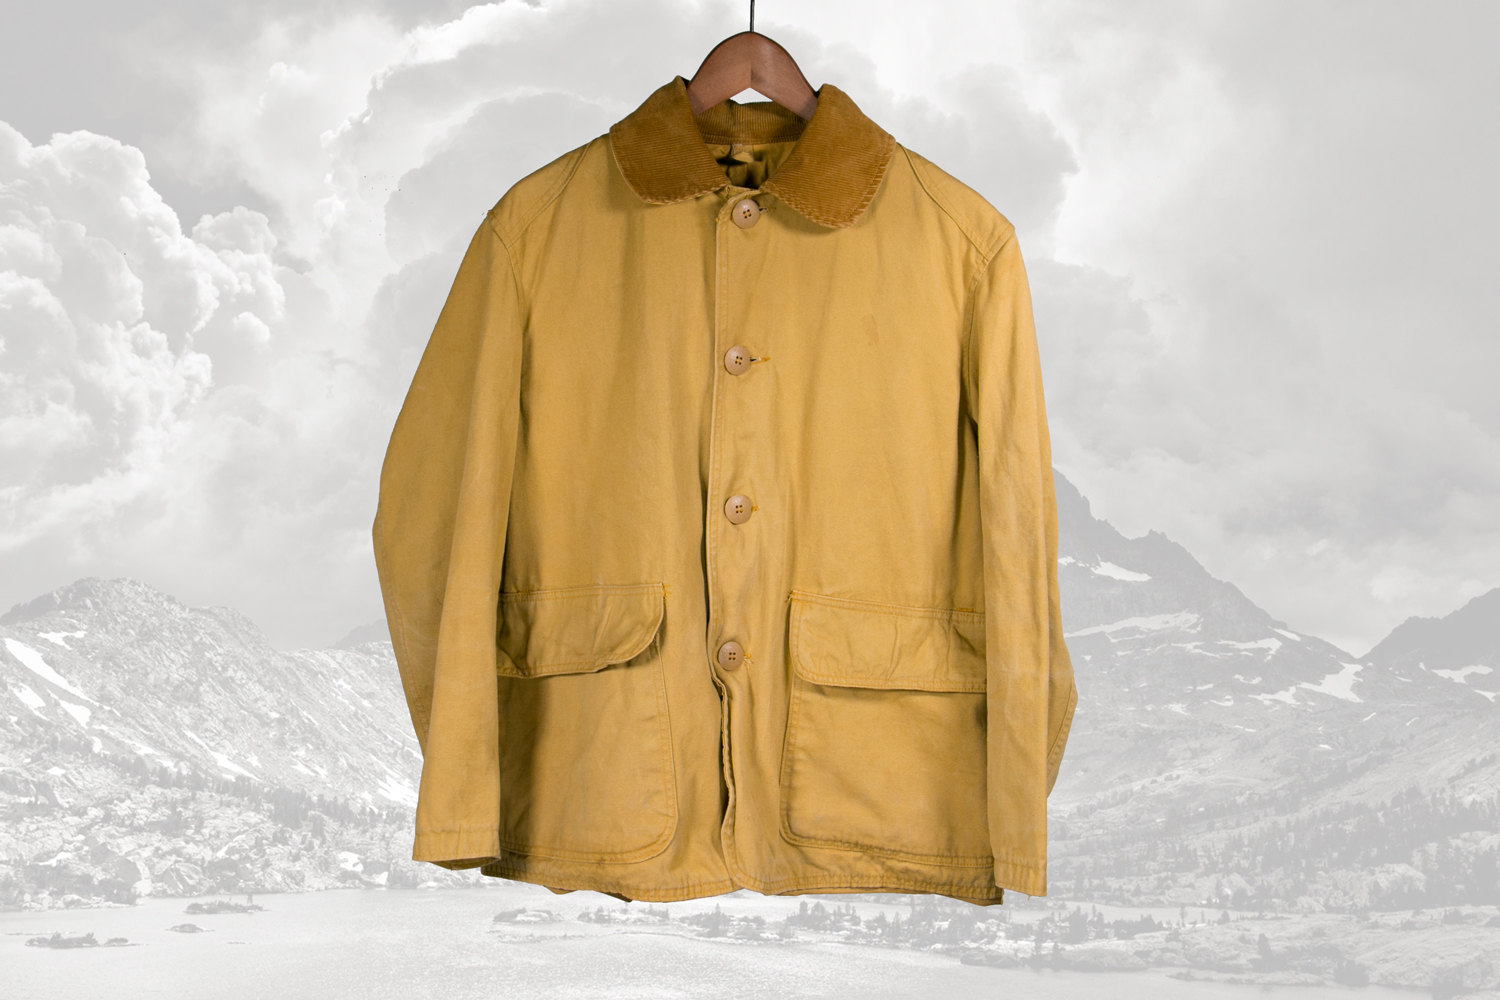 Rare Vintage 1960's JC Higgins for Sears Duck Hunting / Fishing Jacket / Coat- Golden Brown, L-XL, Cotton Canvas & Corduroy